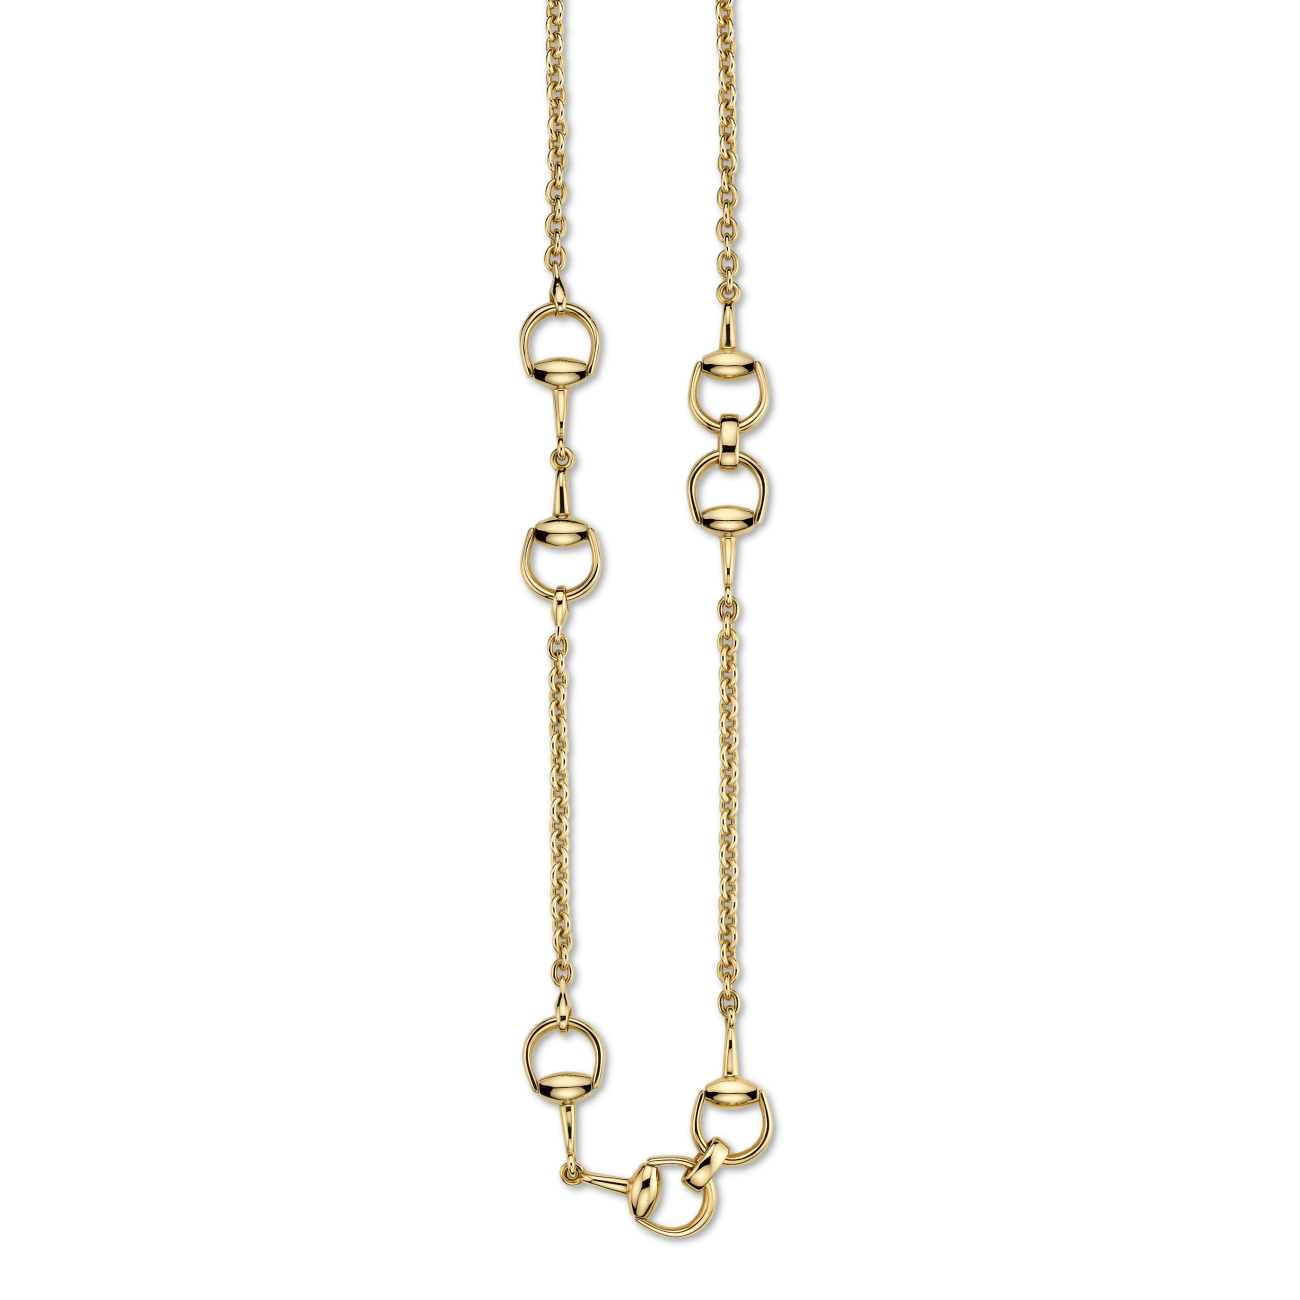 Gucci Jewelry - Horsebit long necklace | Manfredi Jewels